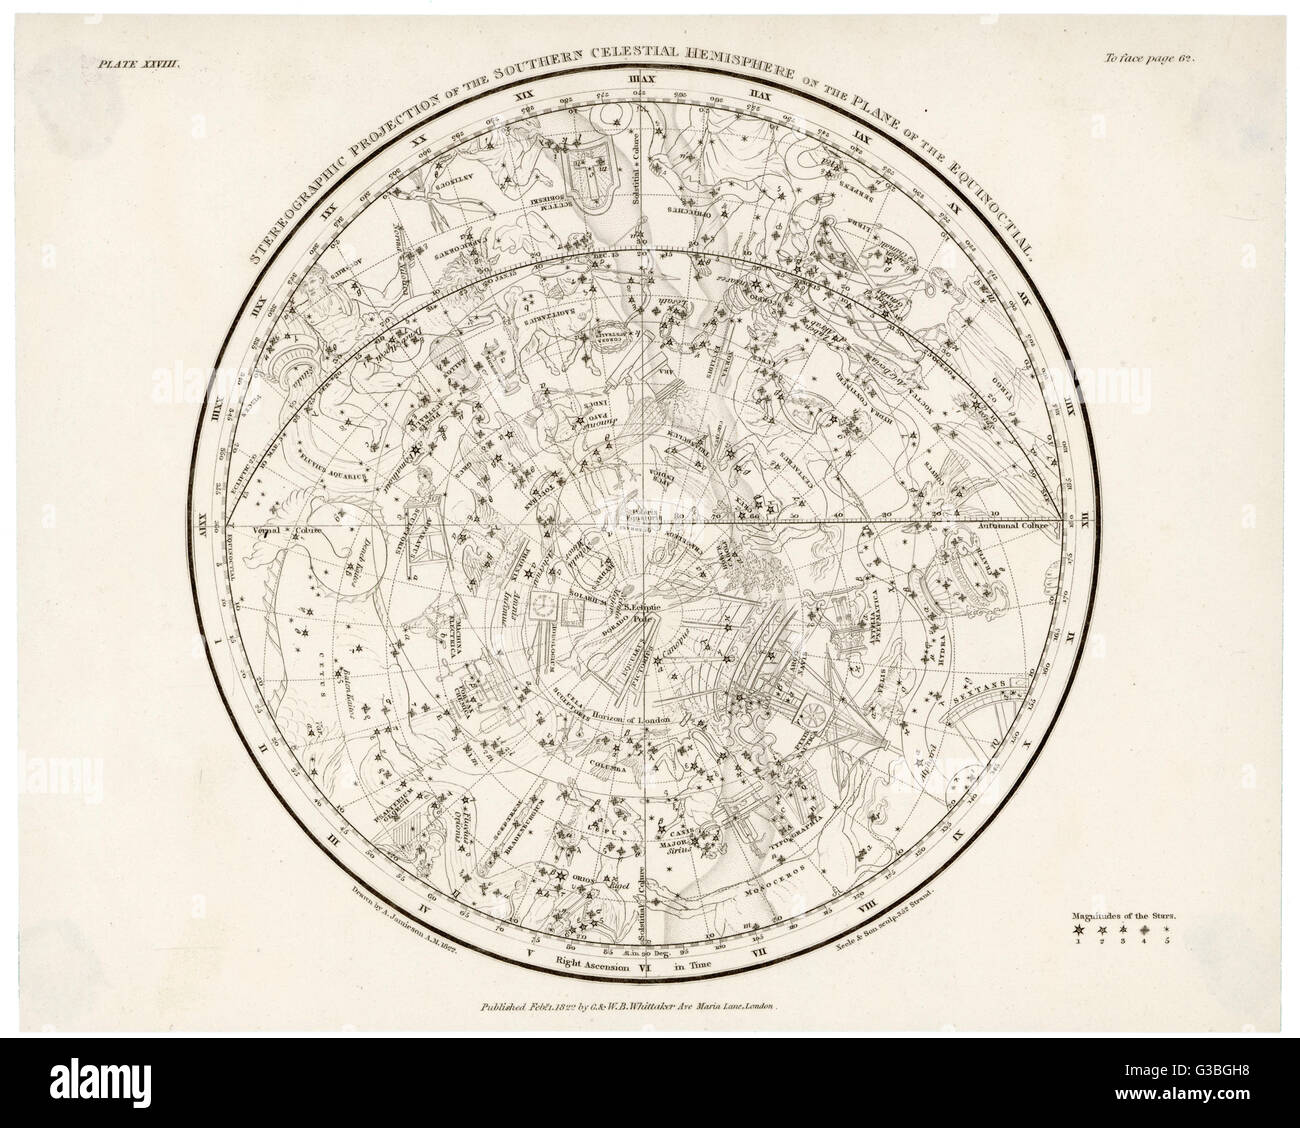 The Southern Hemisphere, with its Zodiac signs.        Date: 1822 - Stock Image